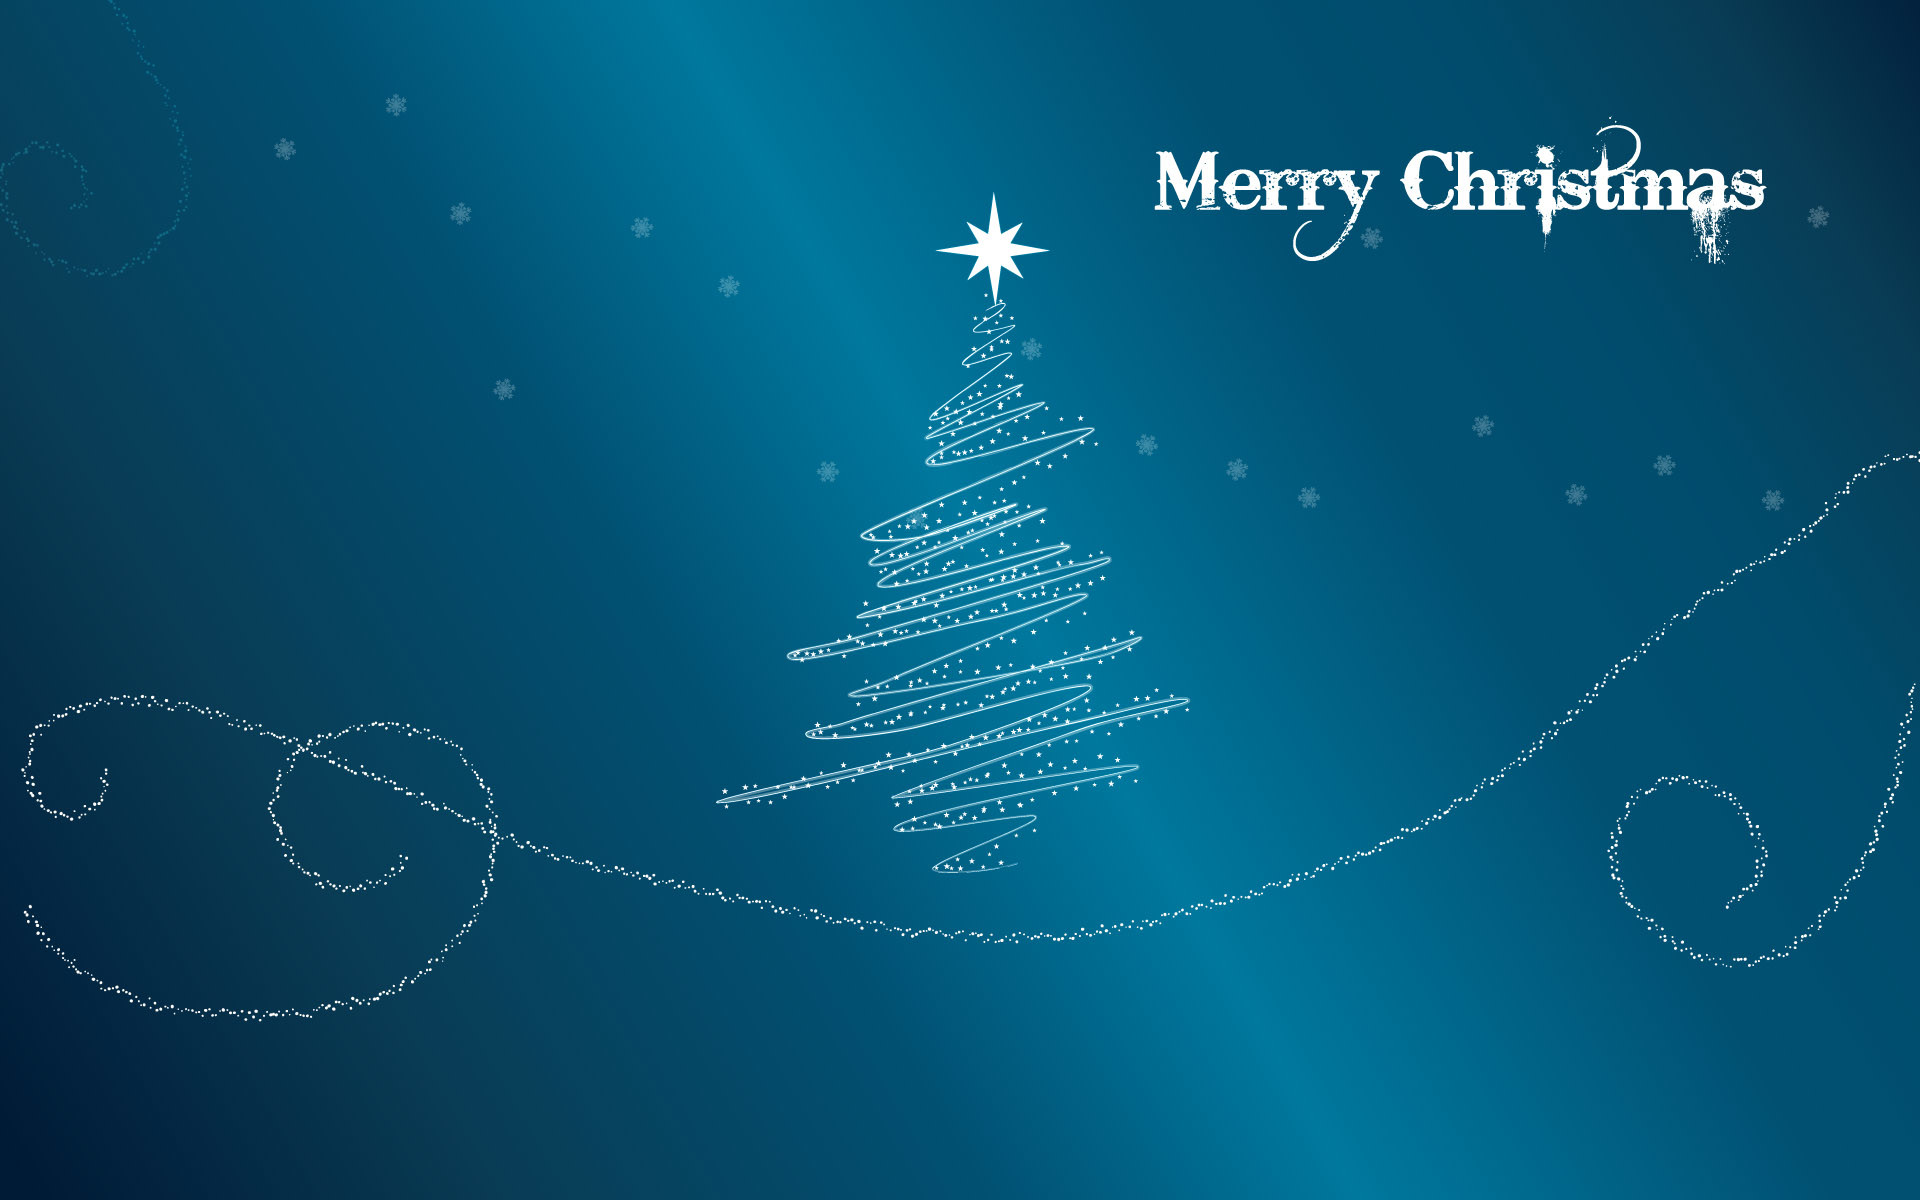 1920x1200 Merry Christmas Glitter Wallpapers | HD Wallpapers